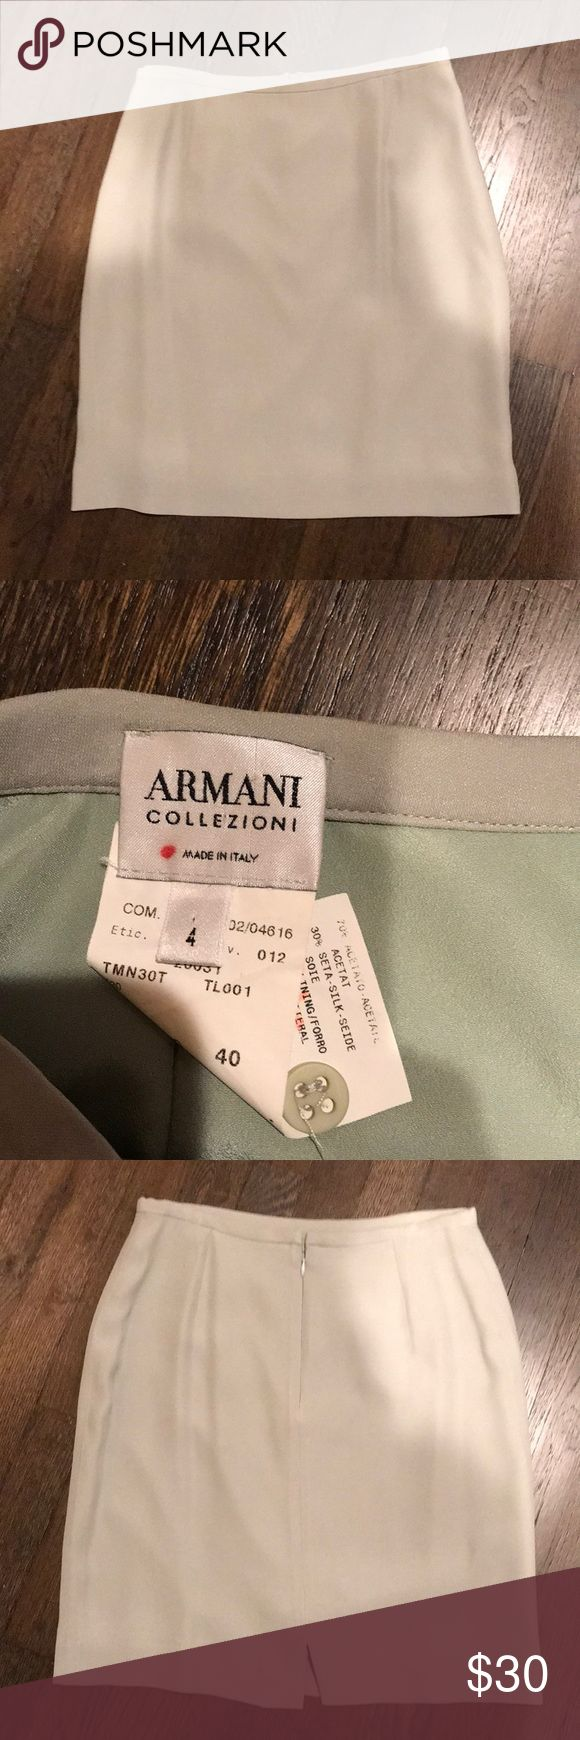 Armani Collezioni skirt Made in Italy. Sage green skirt. 70% Acetat 30% silk Check out my Kay Unger jacket that matches. Armani Collezioni Skirts Mini